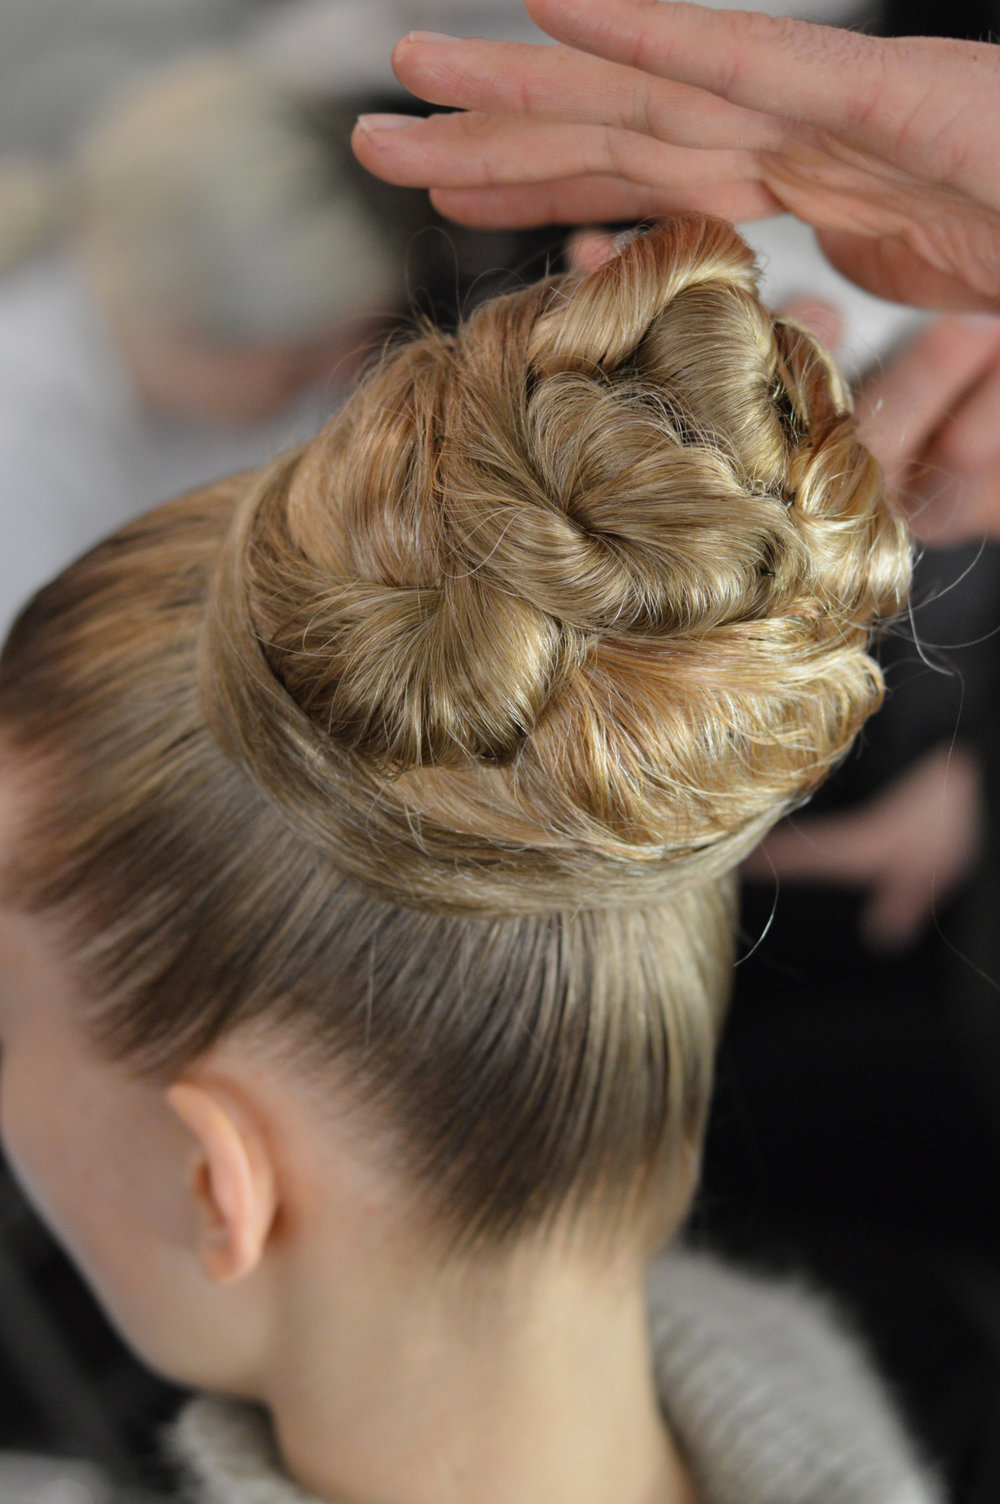 Sky high buns  #backstage  at  Carolina Herrera    Hair by Orlando Pita with Bio Sleek    Image via  kristindee_  with Cult of Pretty